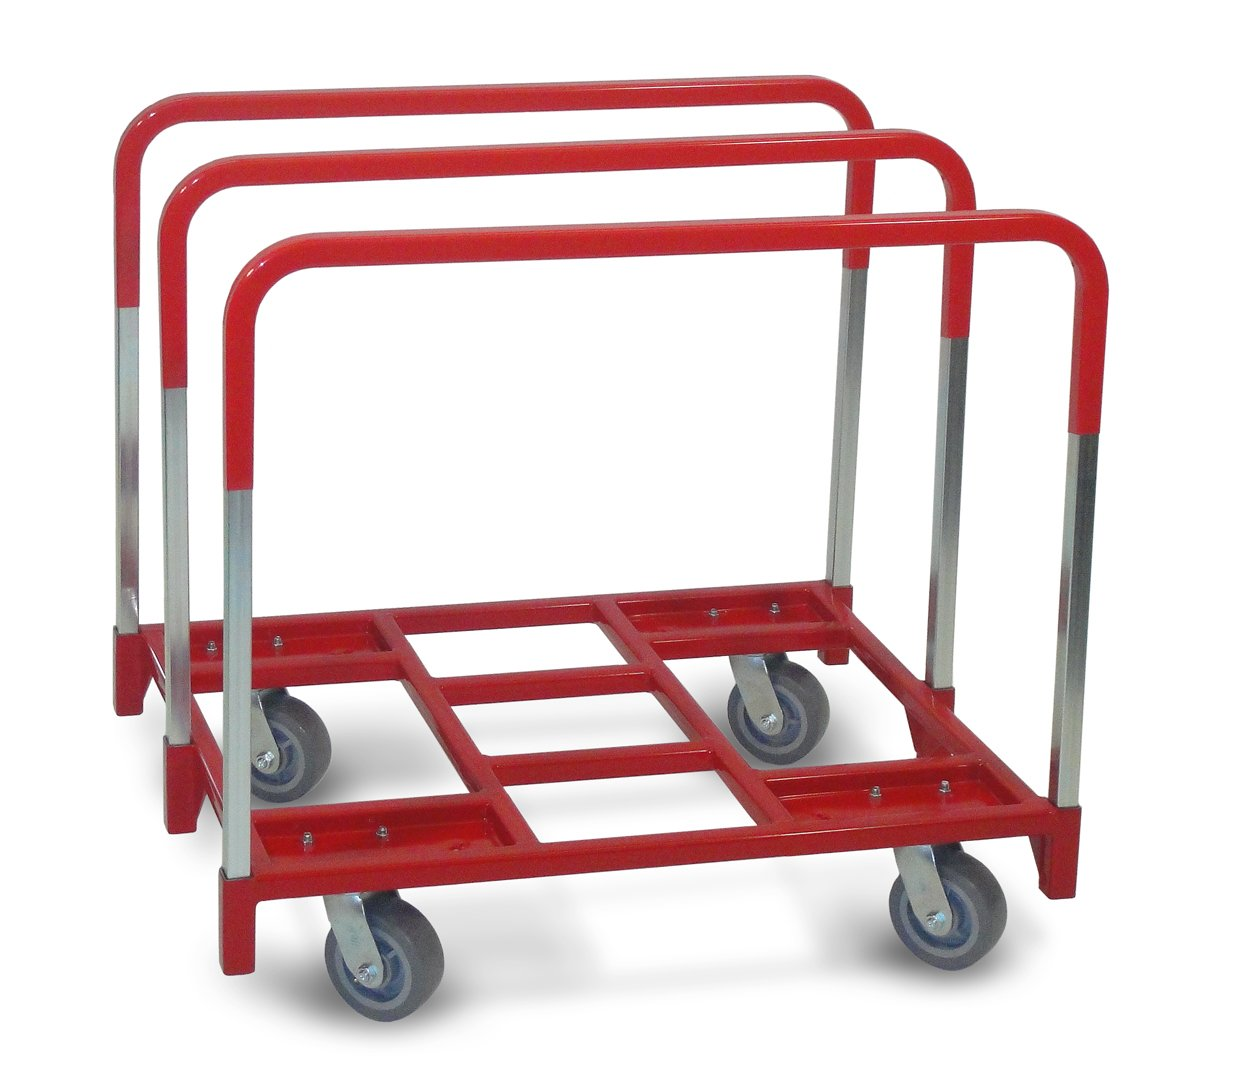 Raymond 3850 Steel Panel Mover with 3 Standard Upright and 5 x 2 Phenolic Casters 2400 lbs Capacity 41 Length x 32 Width x 9 Height